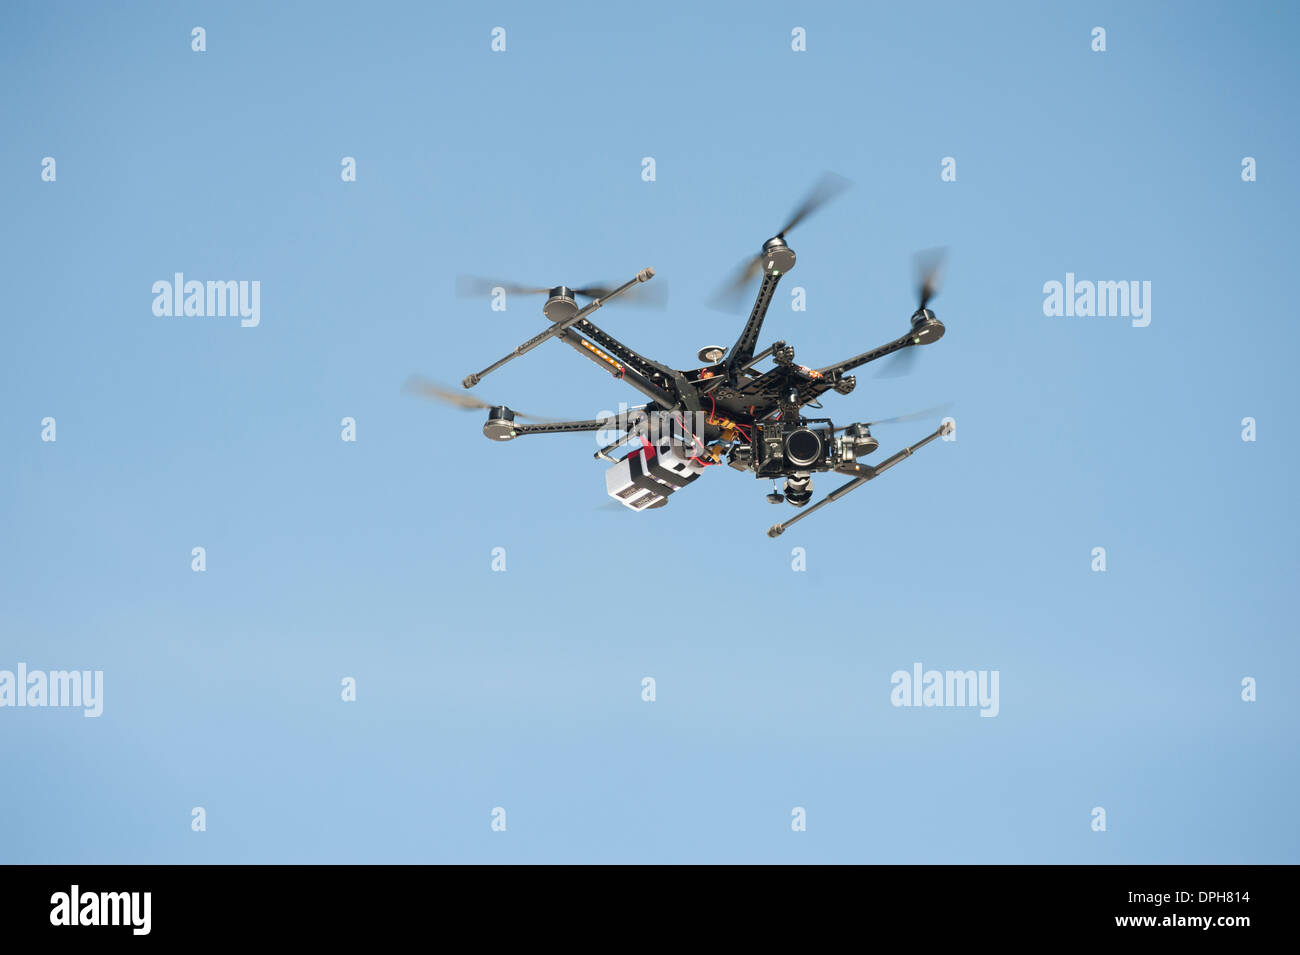 An unmanned Aerial Vehicle (UAV) / drone used for aerial surveillance is flying in the air - Stock Image